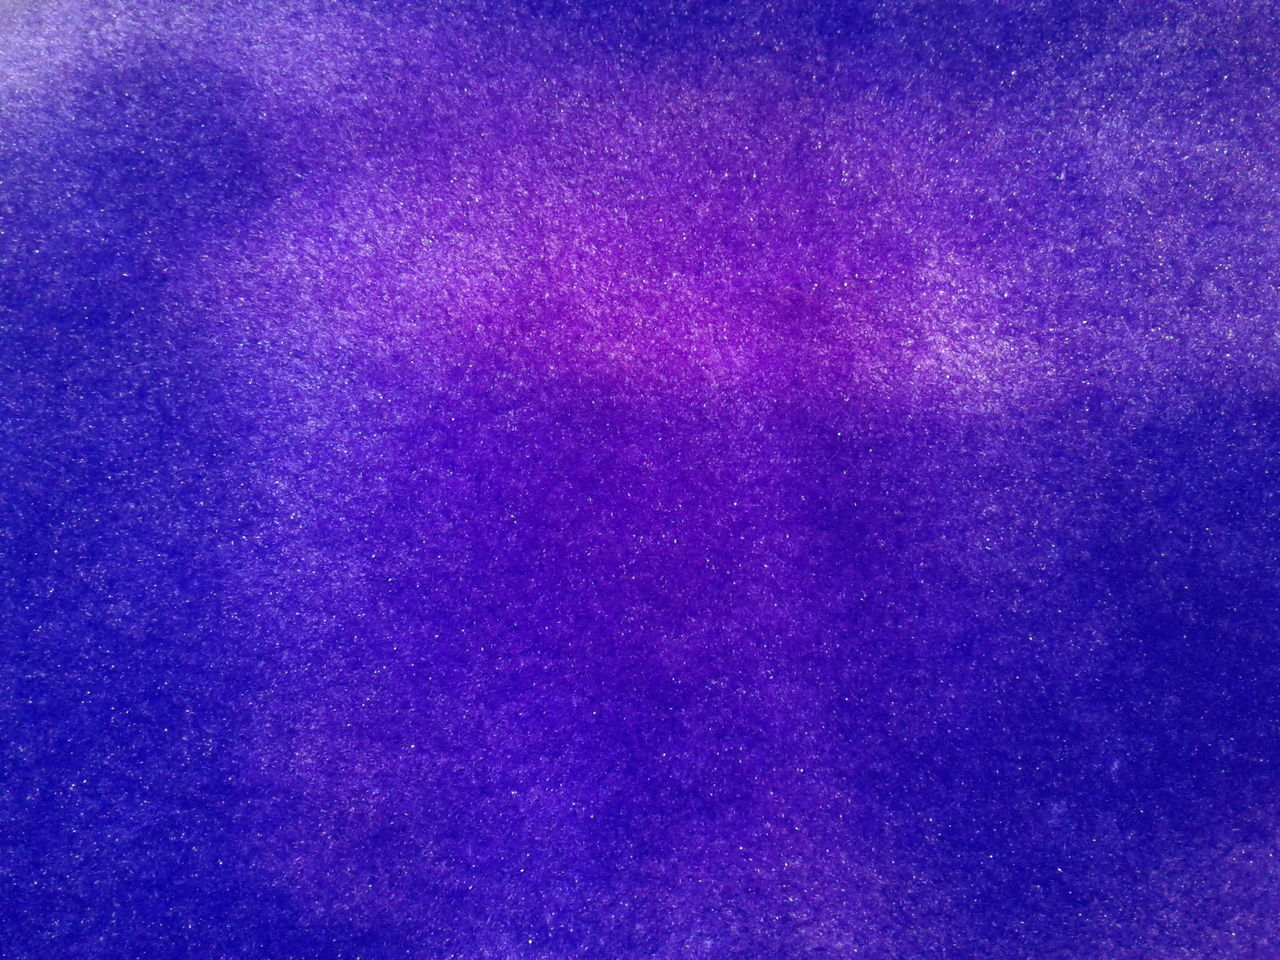 purple, backgrounds, abstract, multi colored, blue, vibrant color, pink color, full frame, textured, no people, illuminated, close-up, day